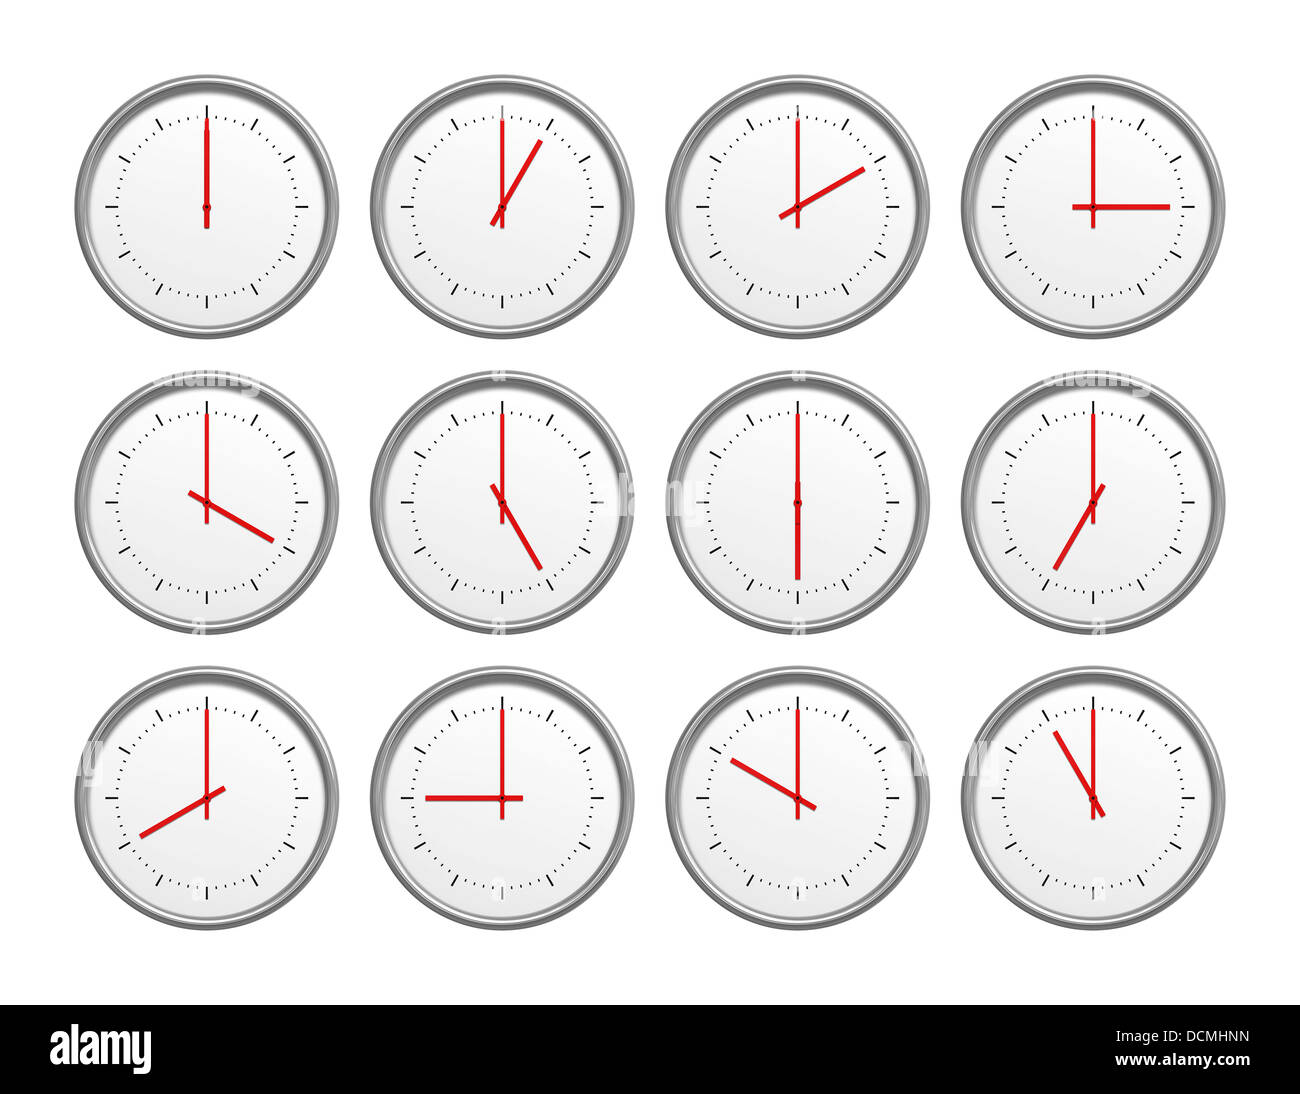 Different Time Zone Clocks Stock Photos Amp Different Time